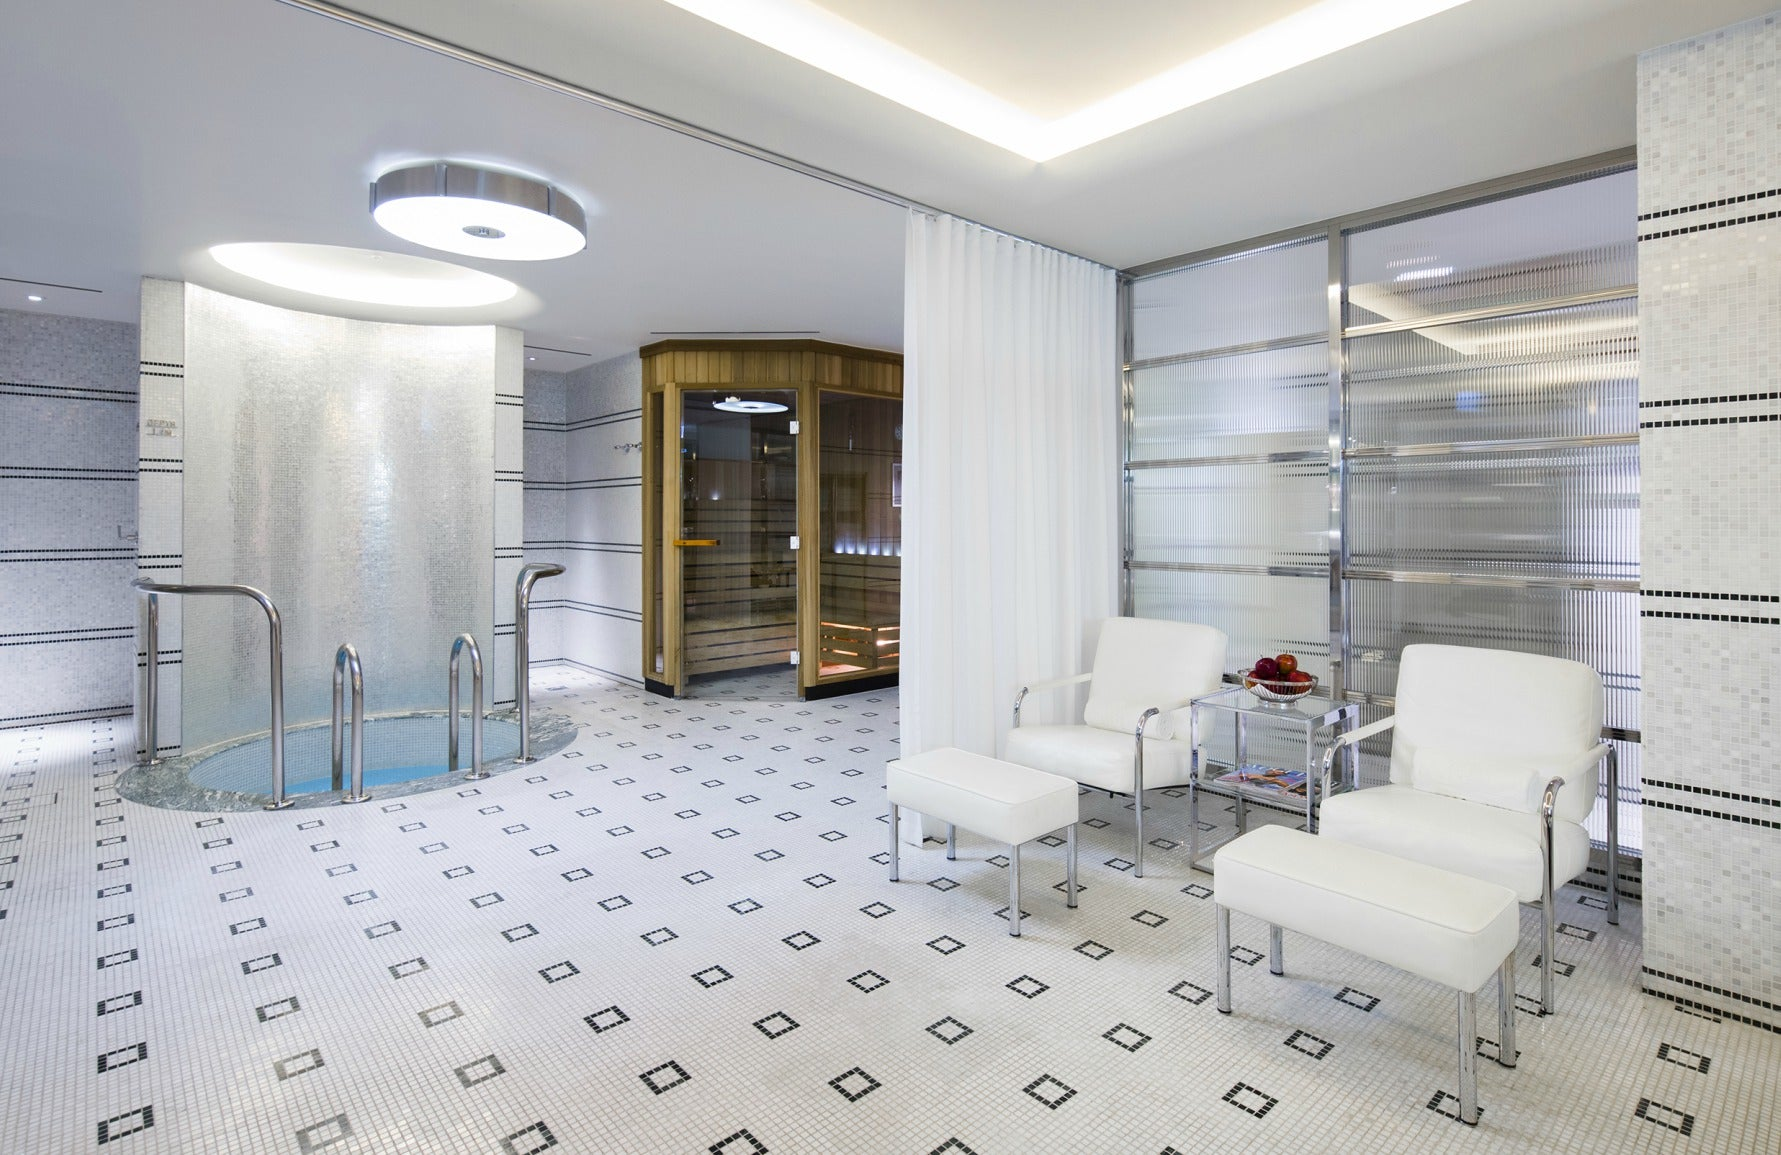 Best Spa In London | Spa at The Beaumont hotel | London Spa Hotel | Read more in The Luxurist at LuxDeco.com